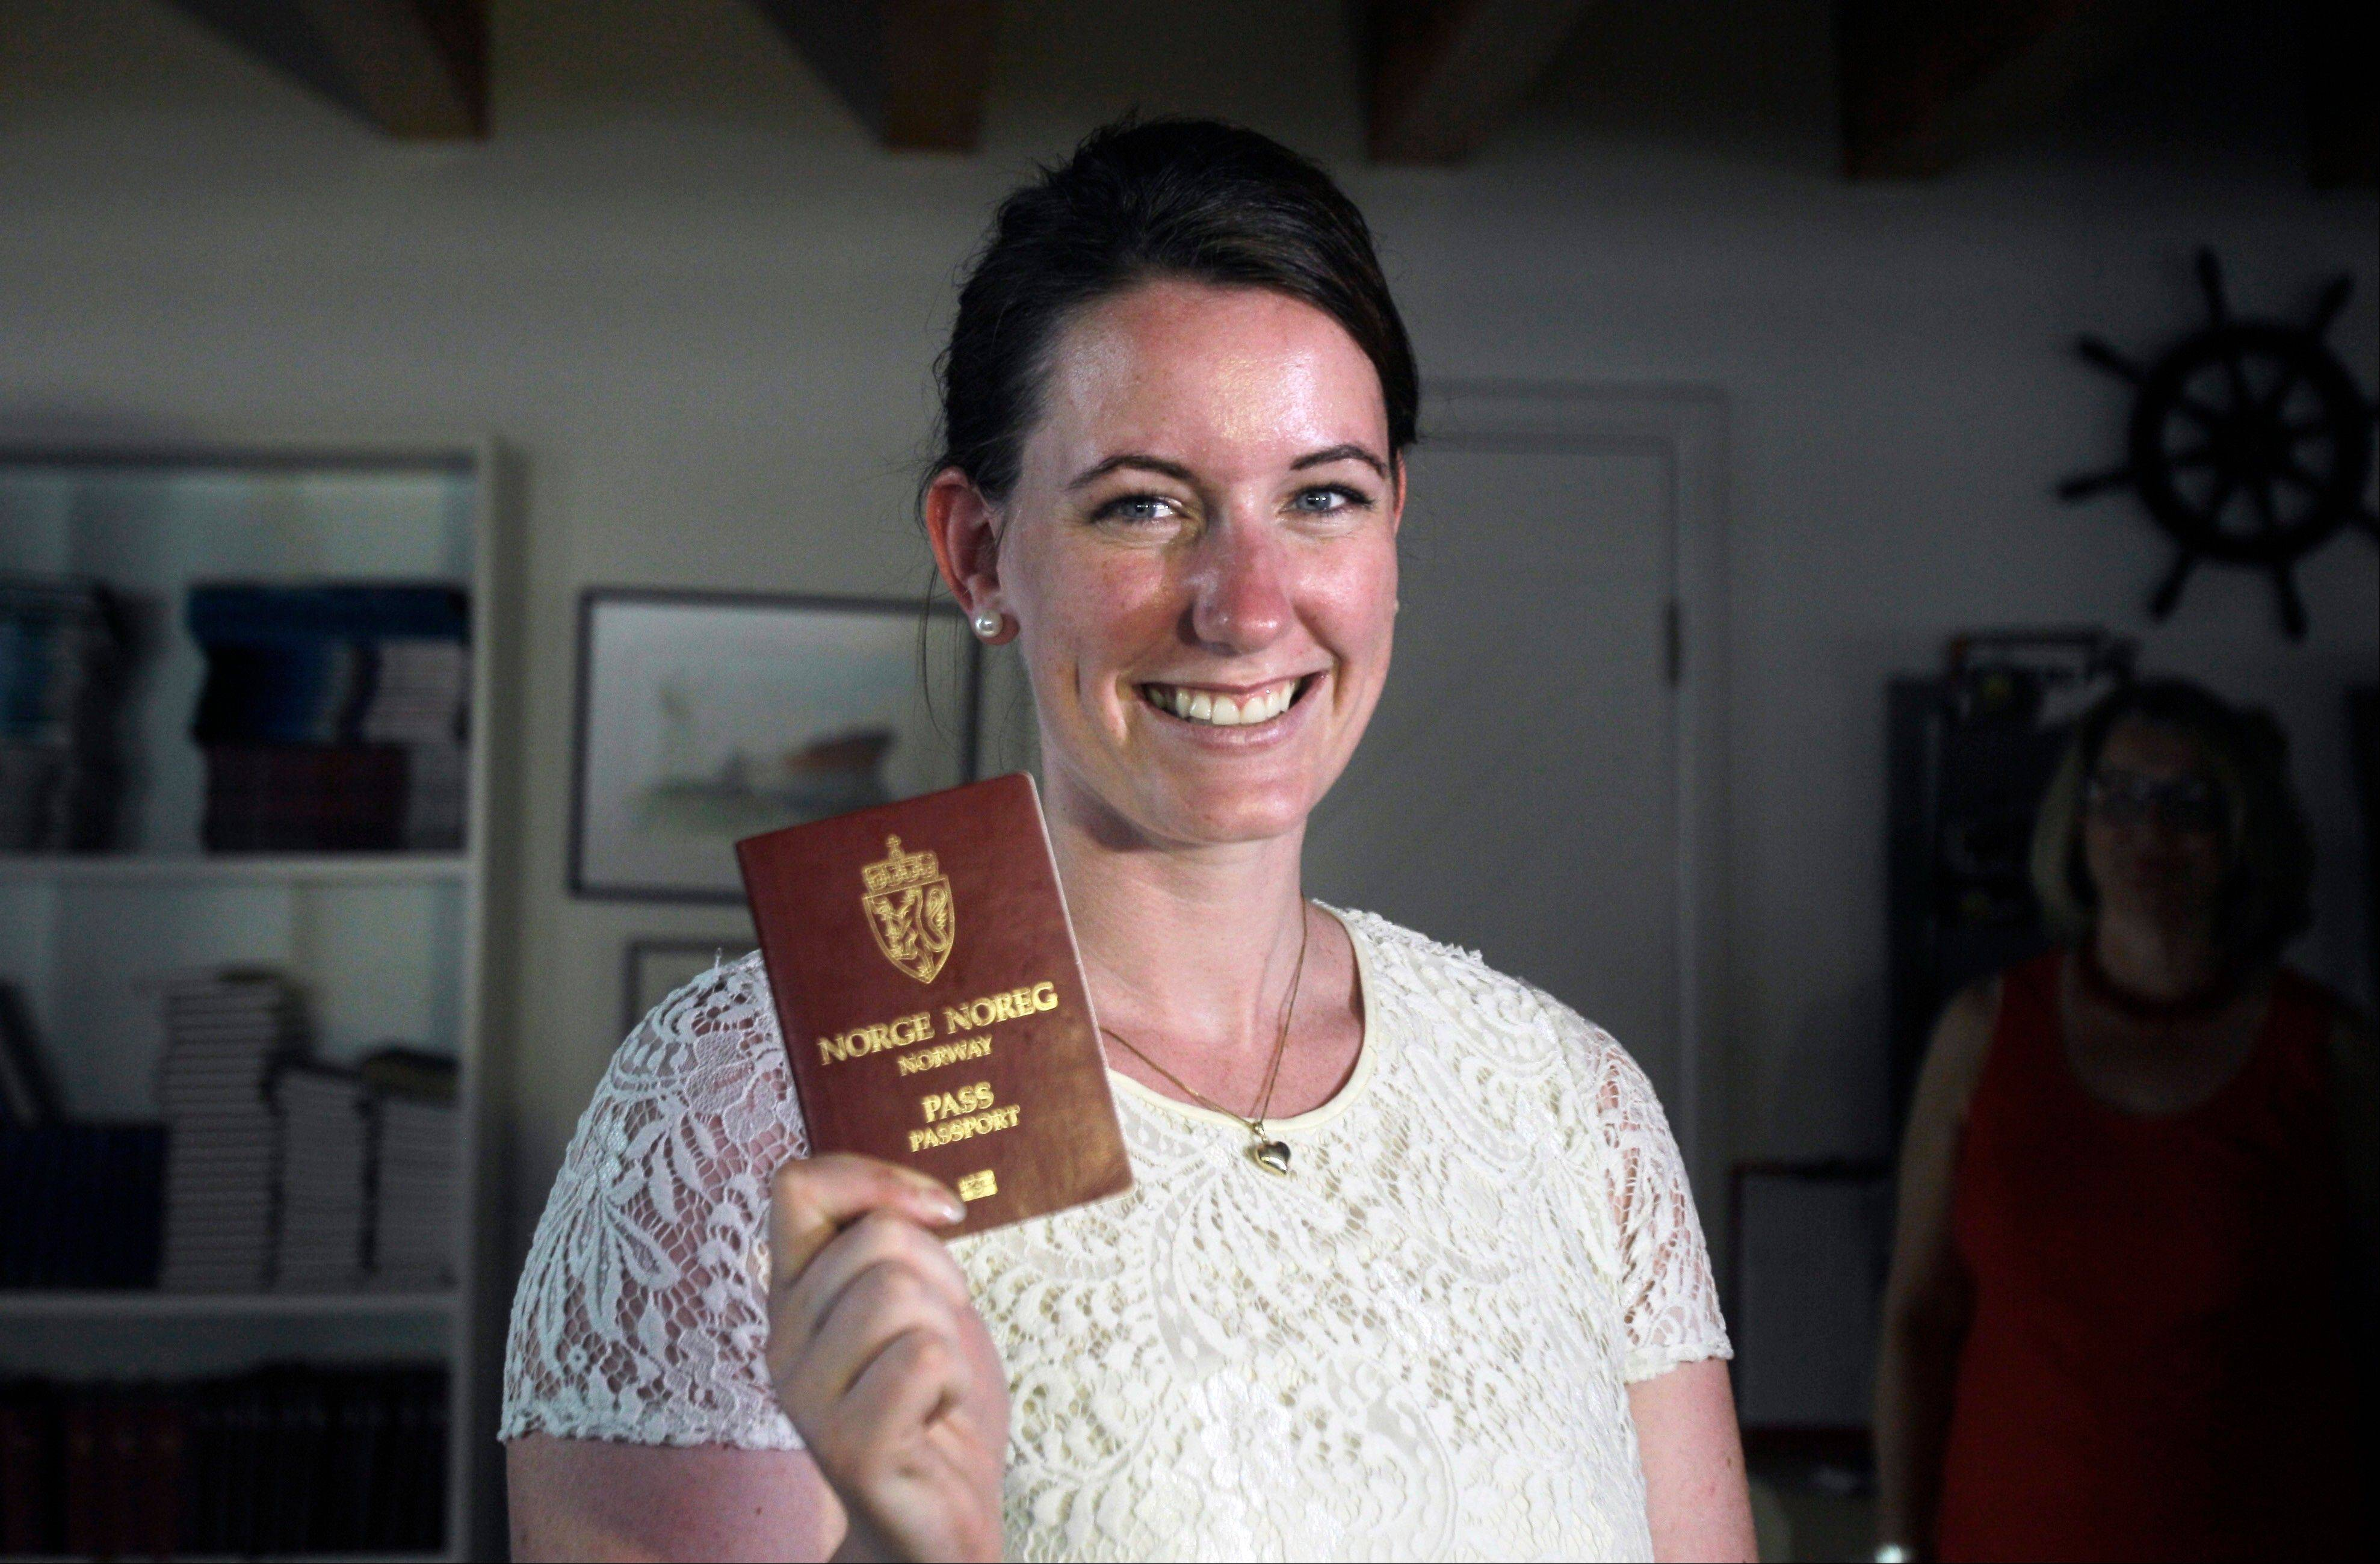 Norwegian Marte Deborah Dalelv, 24, shows her passport at the Norwegian Seaman�s Club in Dubai, United Arab Emirates, Monday. At the center of a Dubai rape claim dispute, she said Sunday officials have dropped her 16-month sentence for having sex outside marriage and she is free to leave the country.